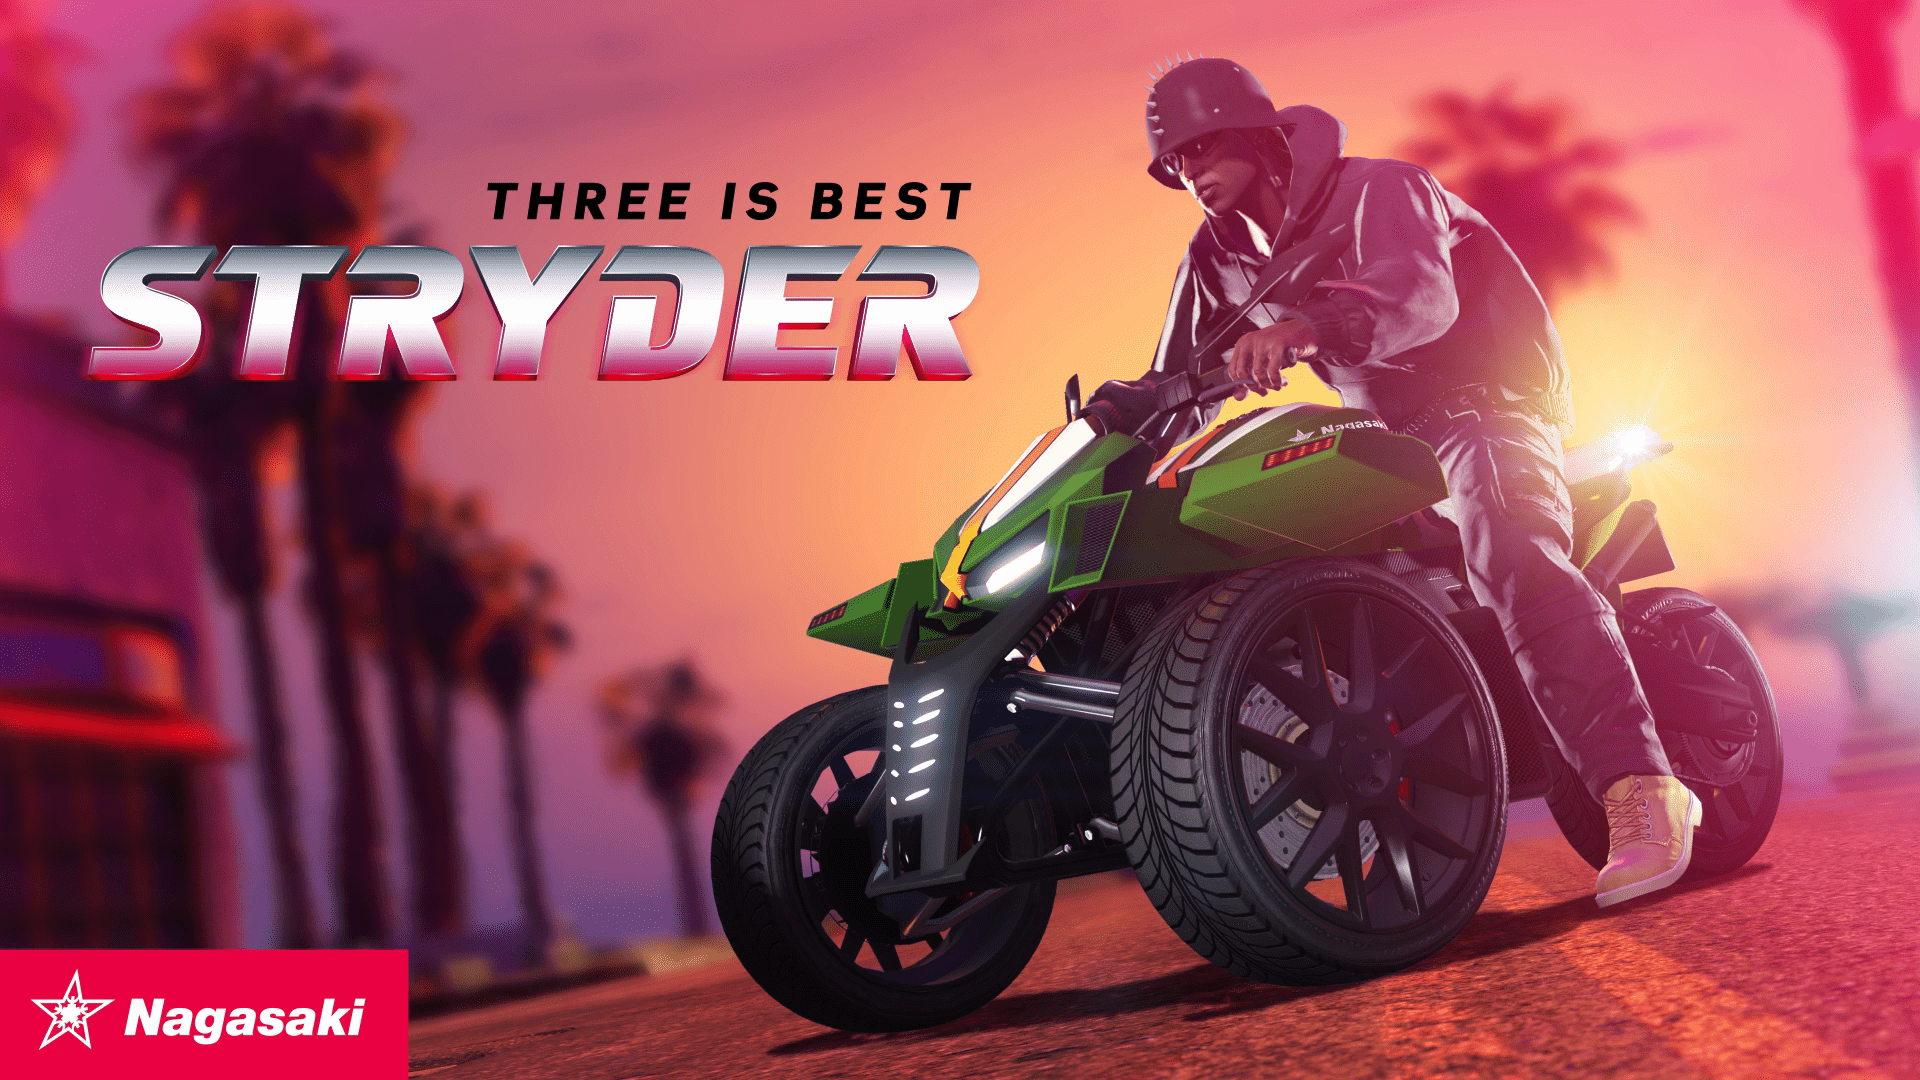 GTA Online: Nagasaki Stryder Now Available, Double Rewards on Gunrunning Sell Missions & more